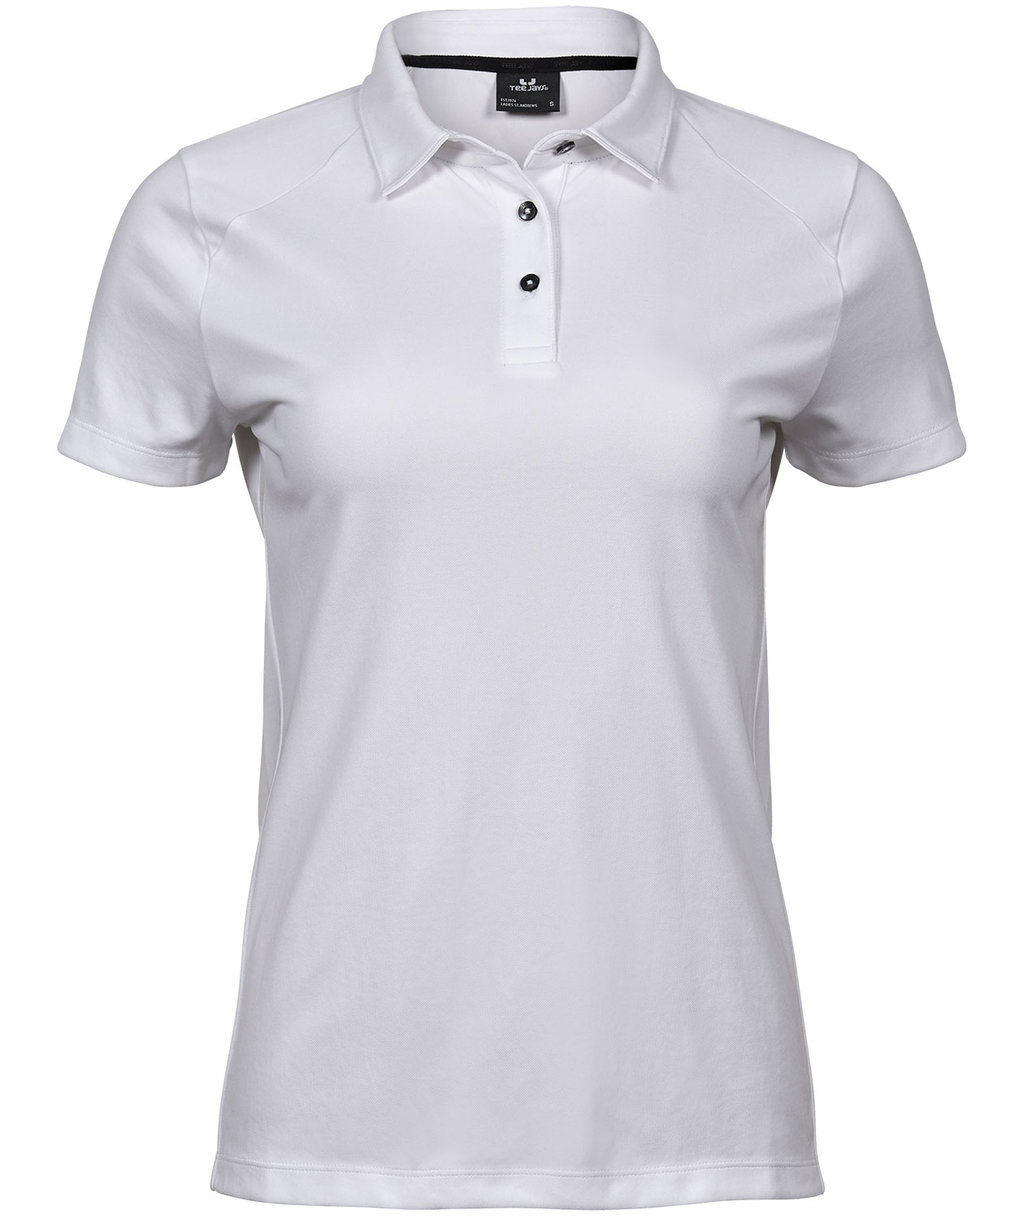 Tee Jays Luxury Sport dame polo T shirt, Hvid